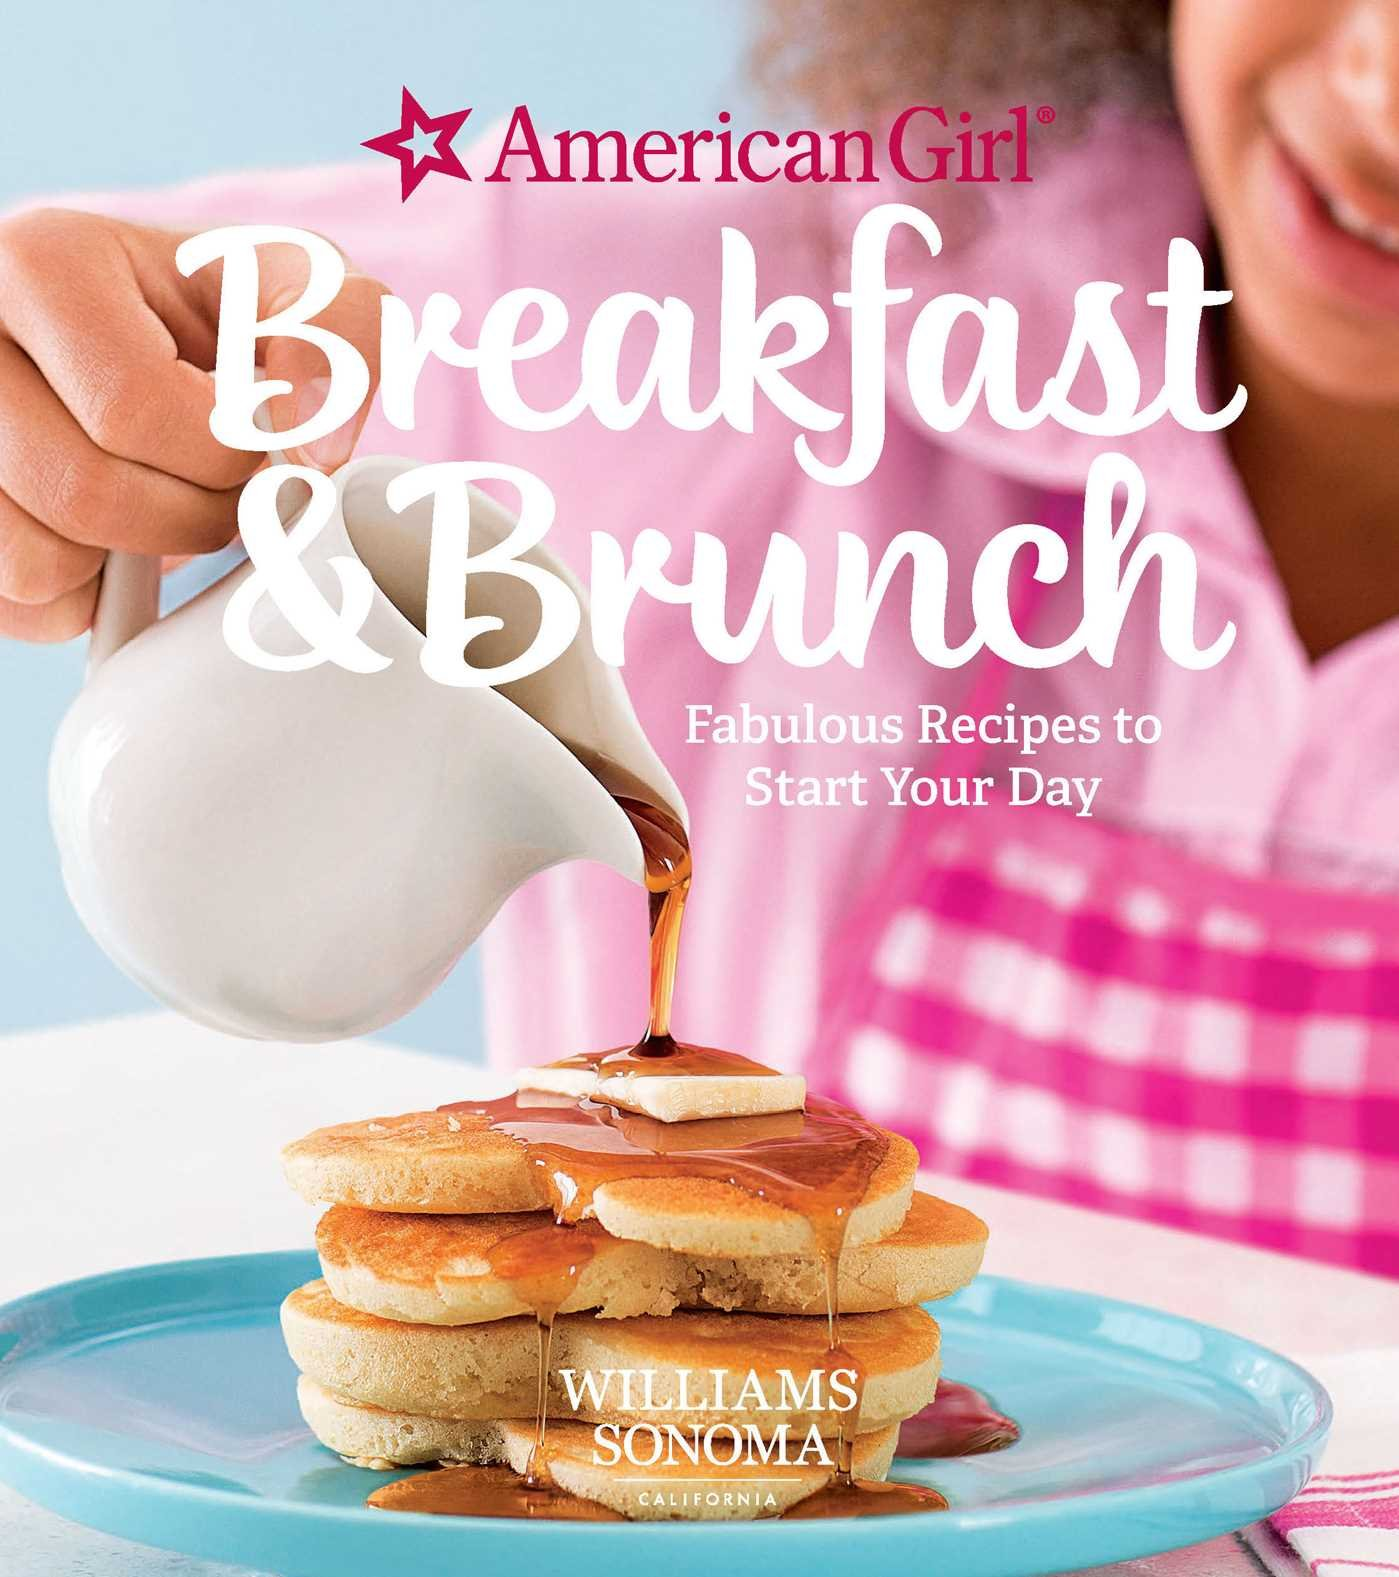 American Girl Breakfast and Brunch (Williams-Sonoma)